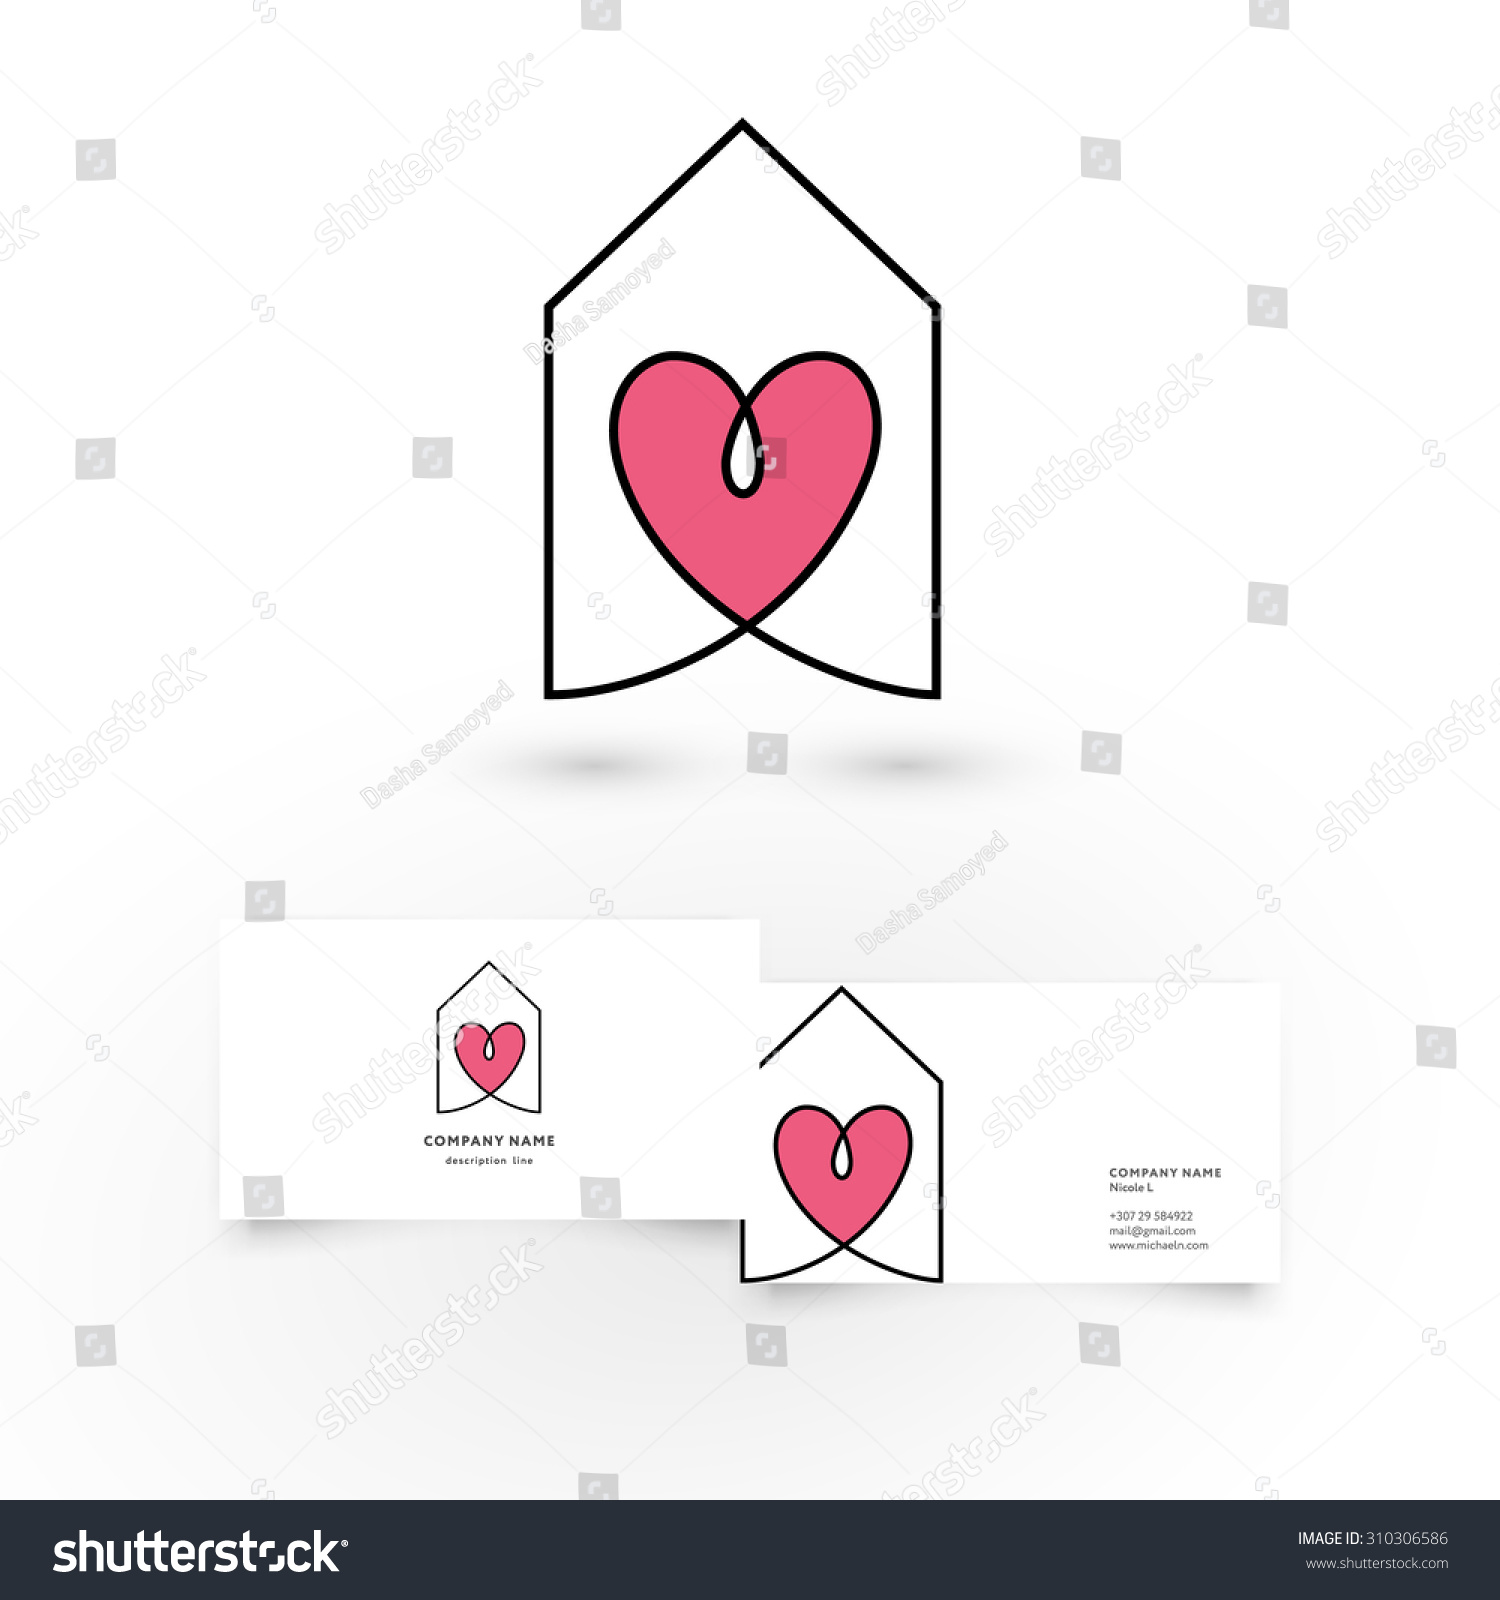 Fresh Photos Of Heart Shaped Business Cards – Business Cards and Resume